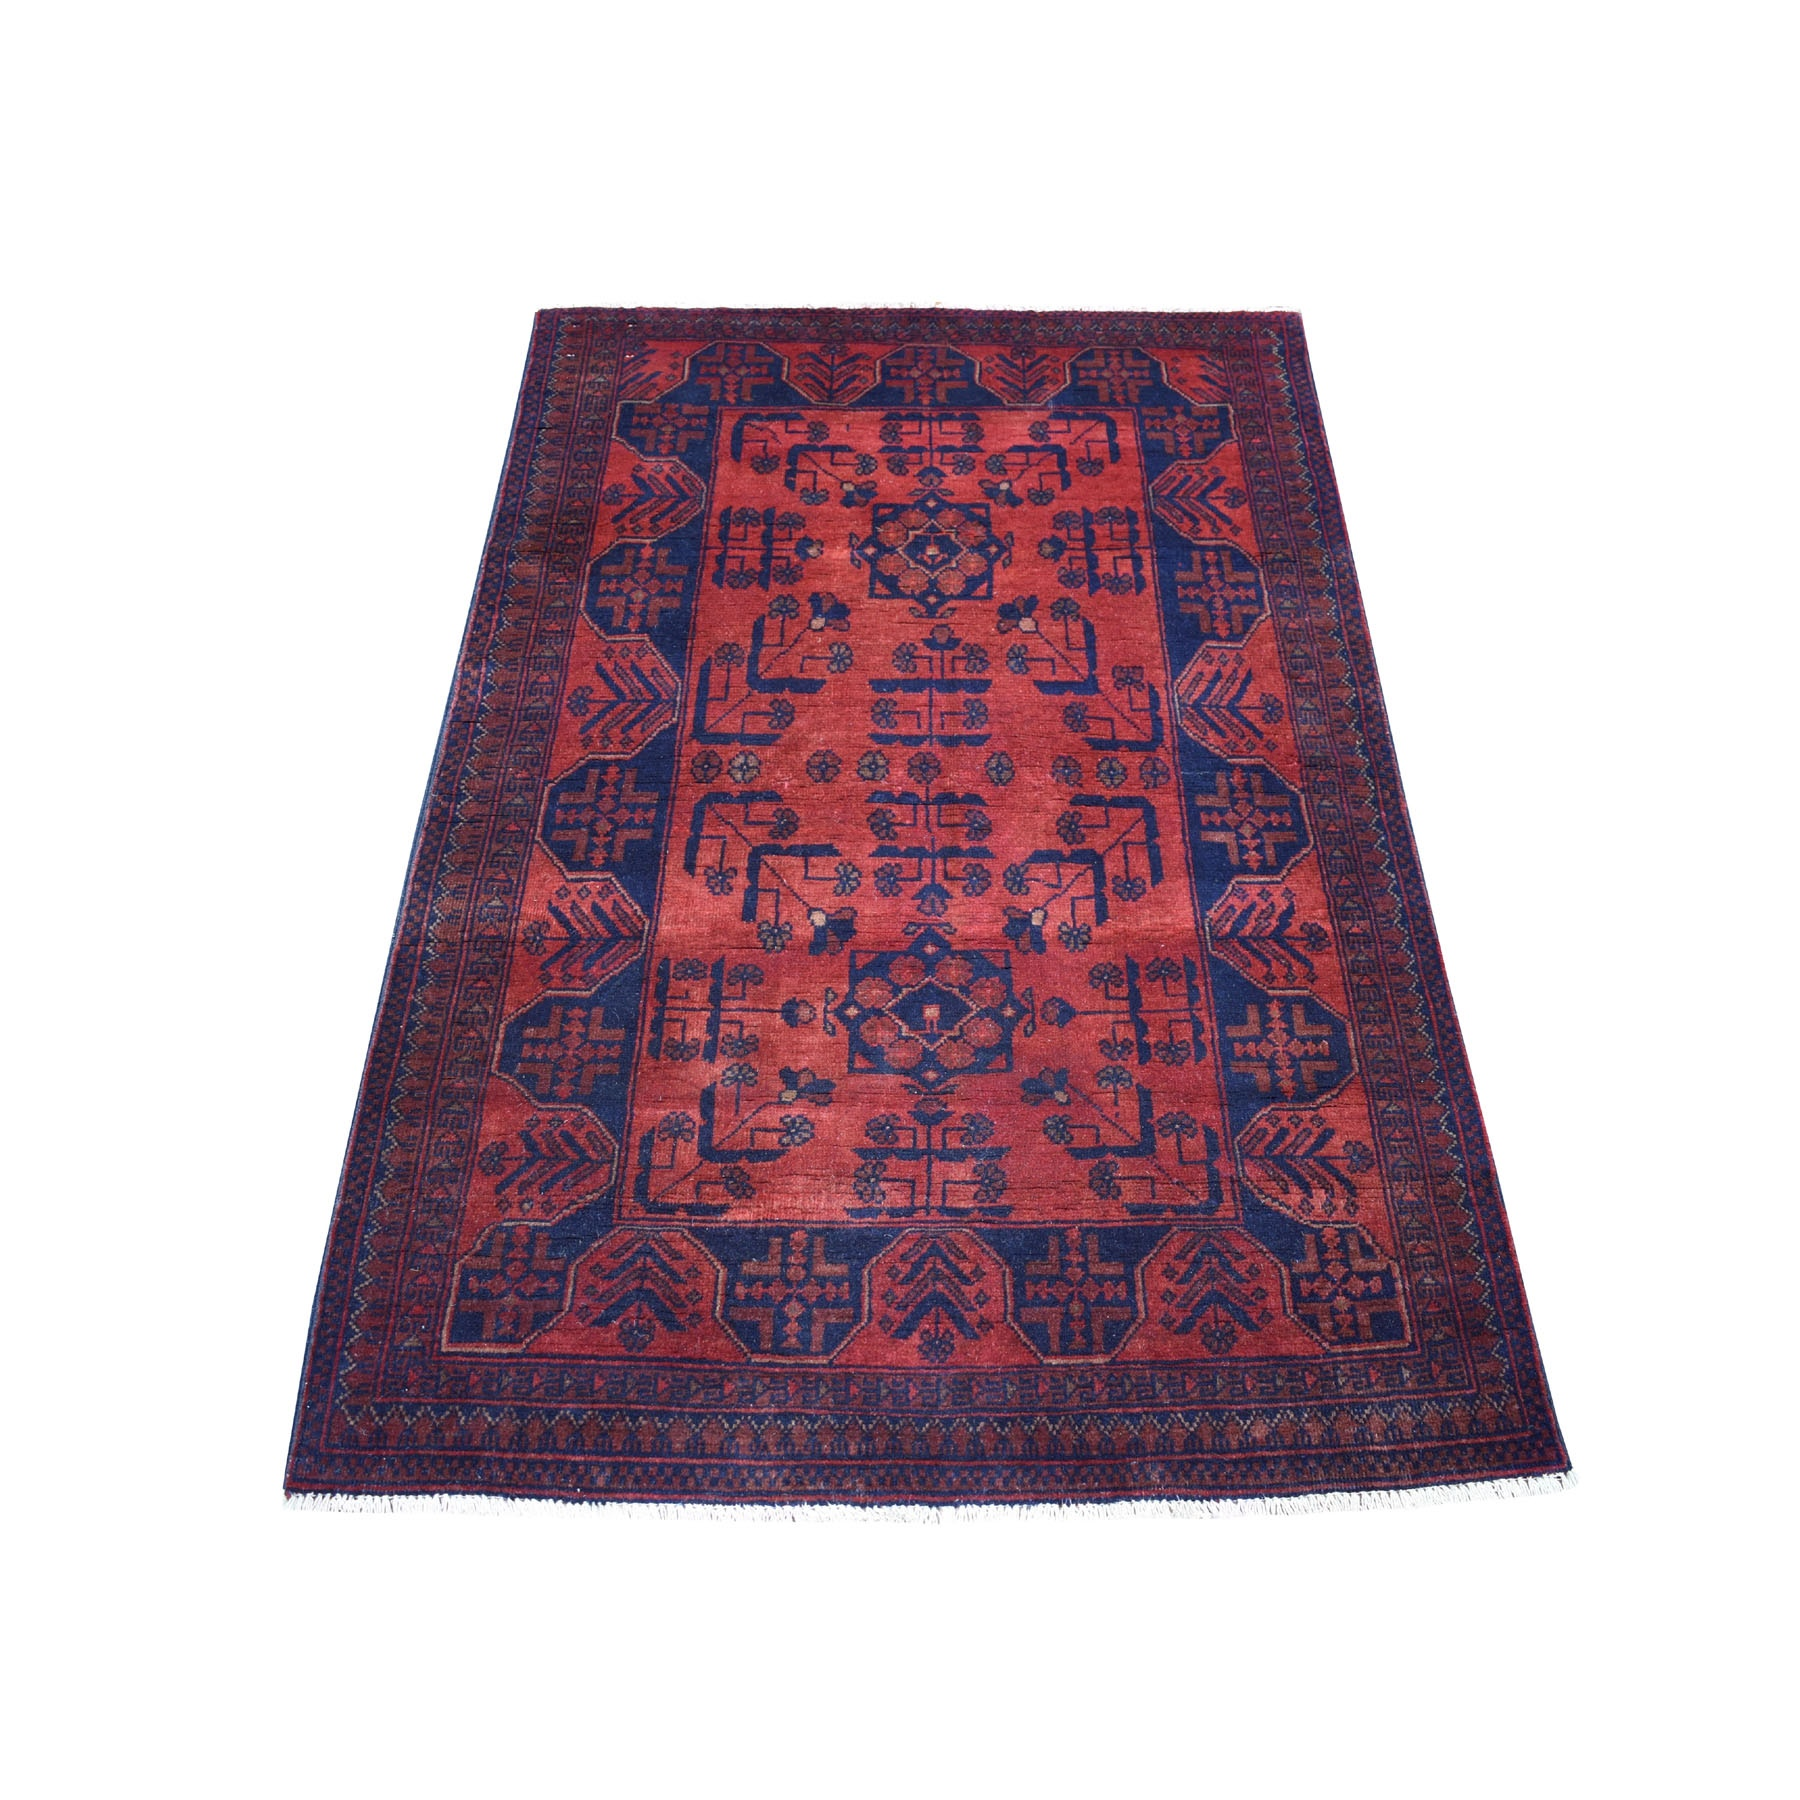 "3'3""x5'1"" Deep and Saturated Red Geometric Design Afghan Andkhoy Pure Wool Hand Woven Oriental Rug"